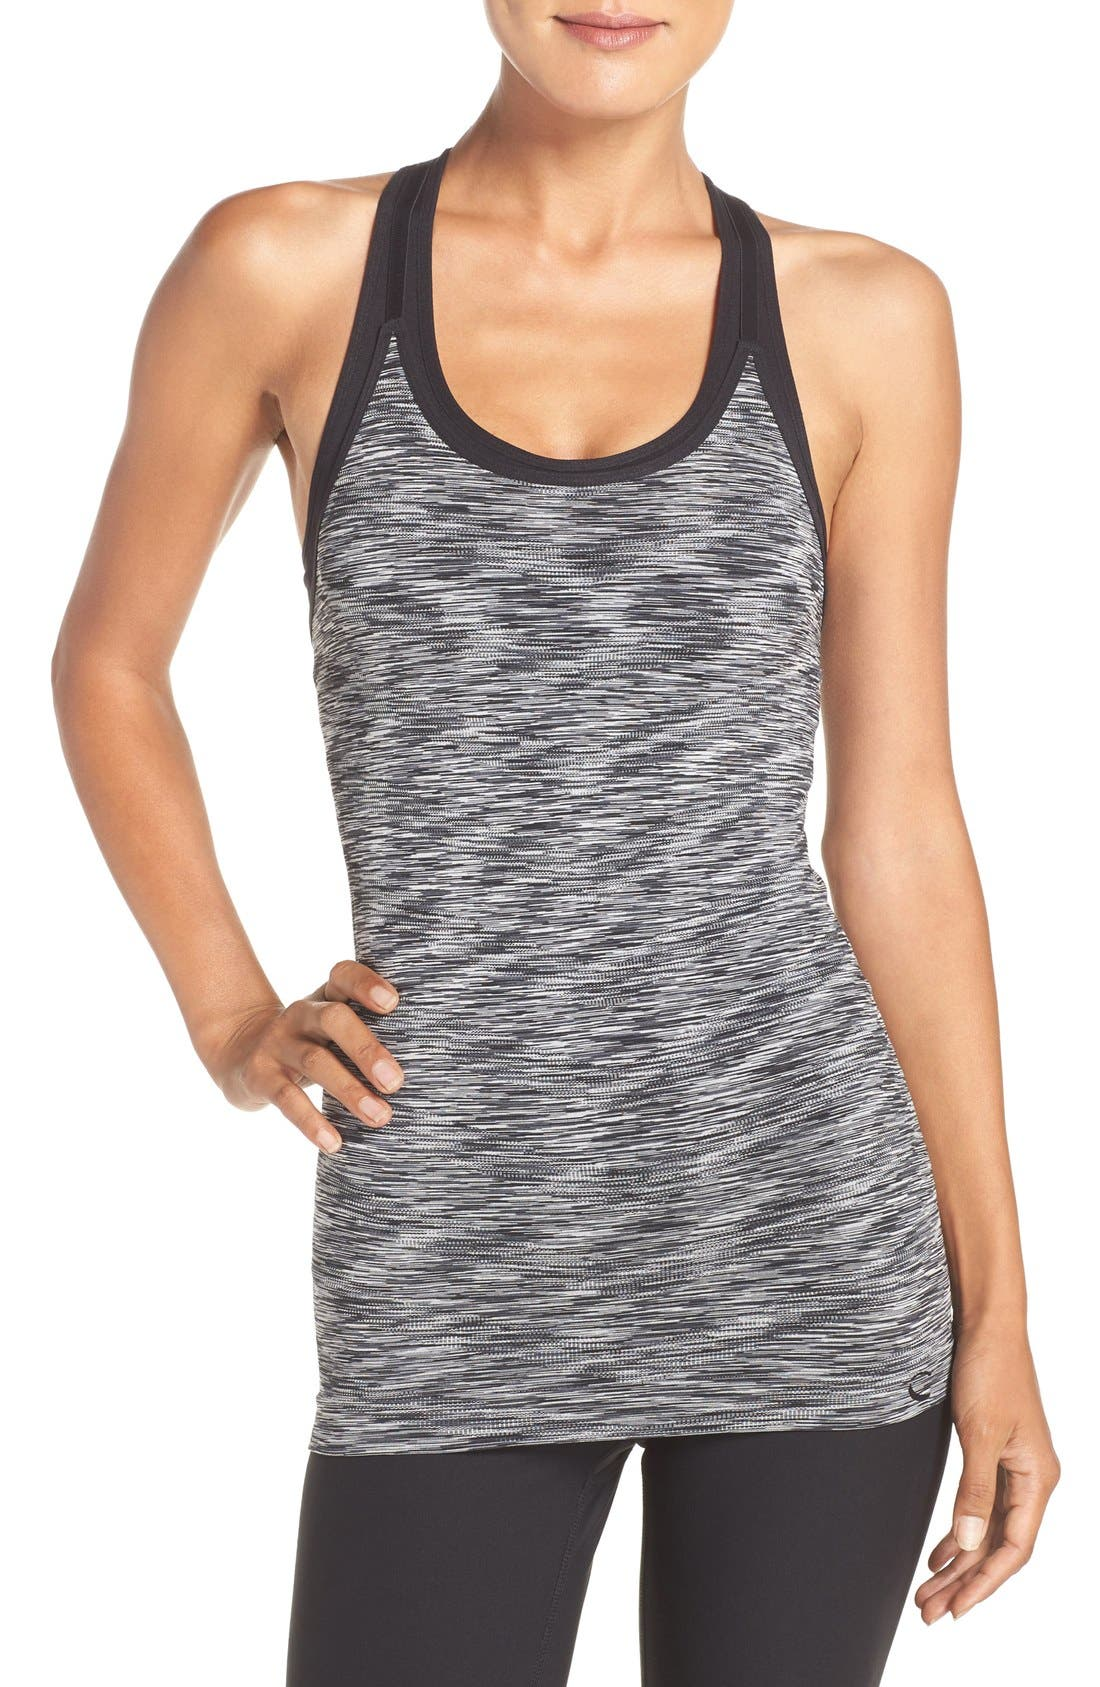 Climawear 'Team Layer' Shelf Bra Tank